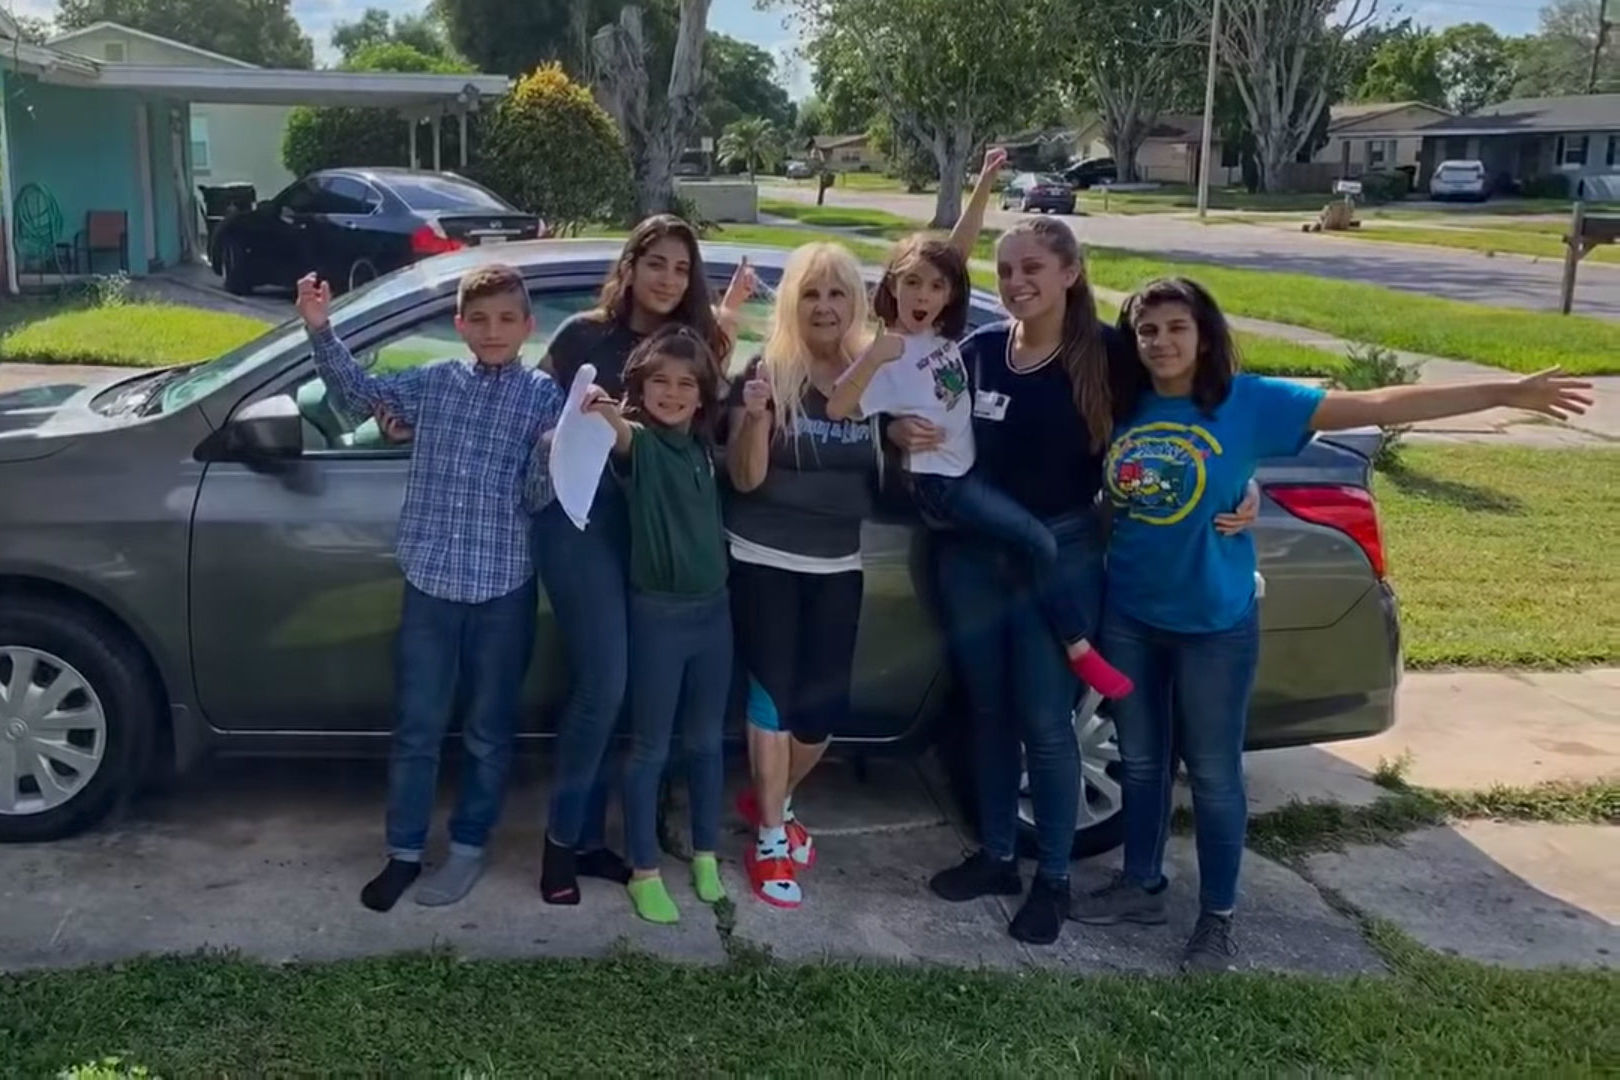 Florida Police Department Surprises 20-Year-Old Raising Her 5 Younger Siblings With a Car